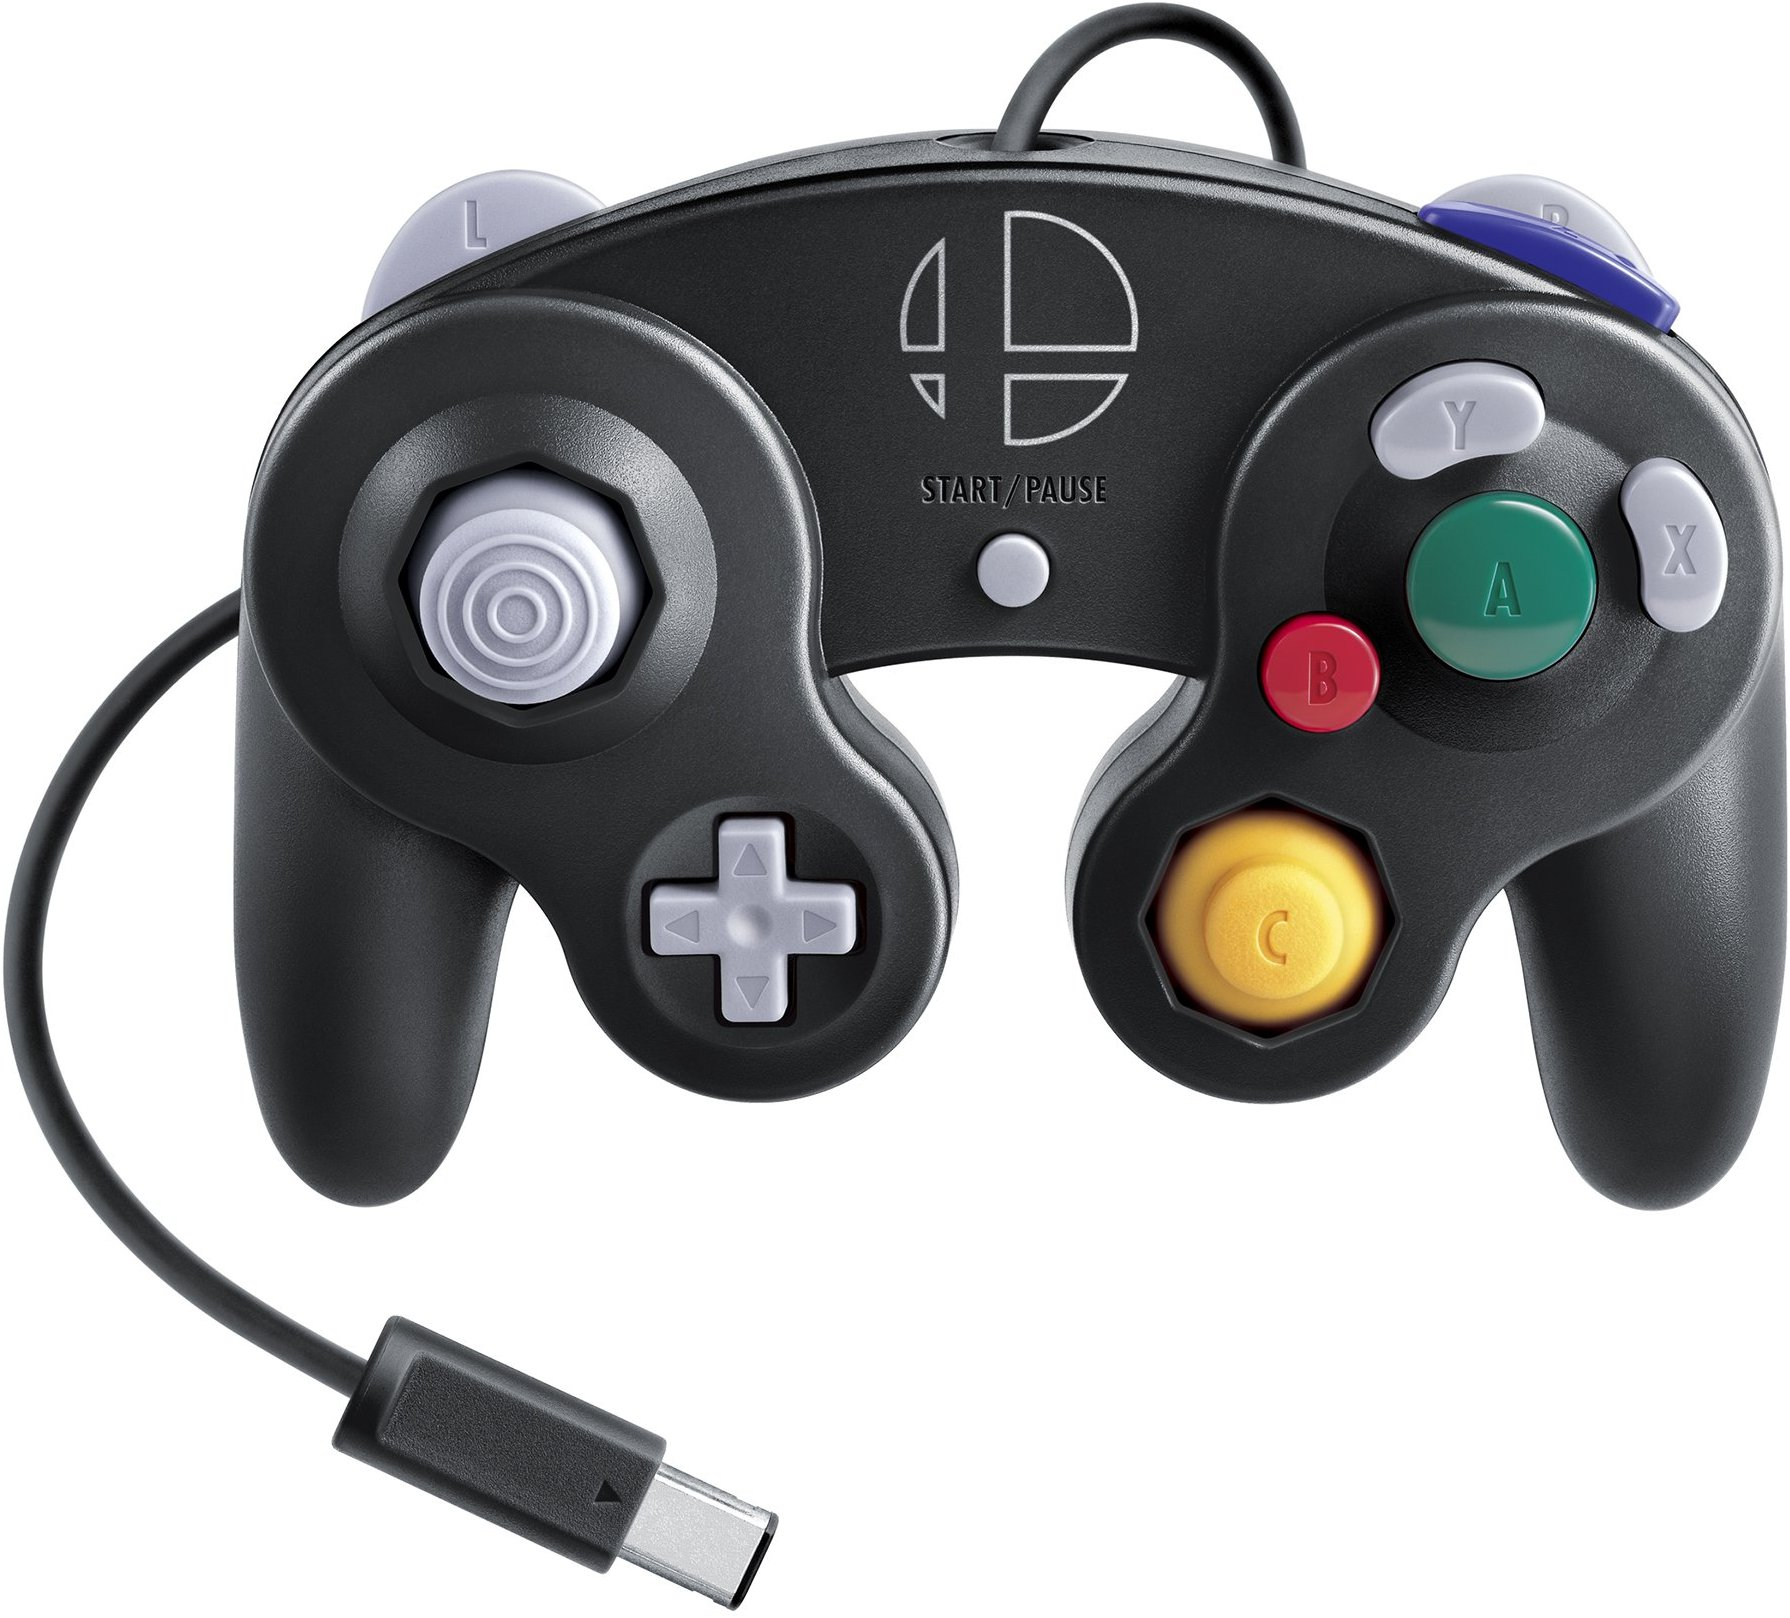 GameCube controller for Nintendo Switch